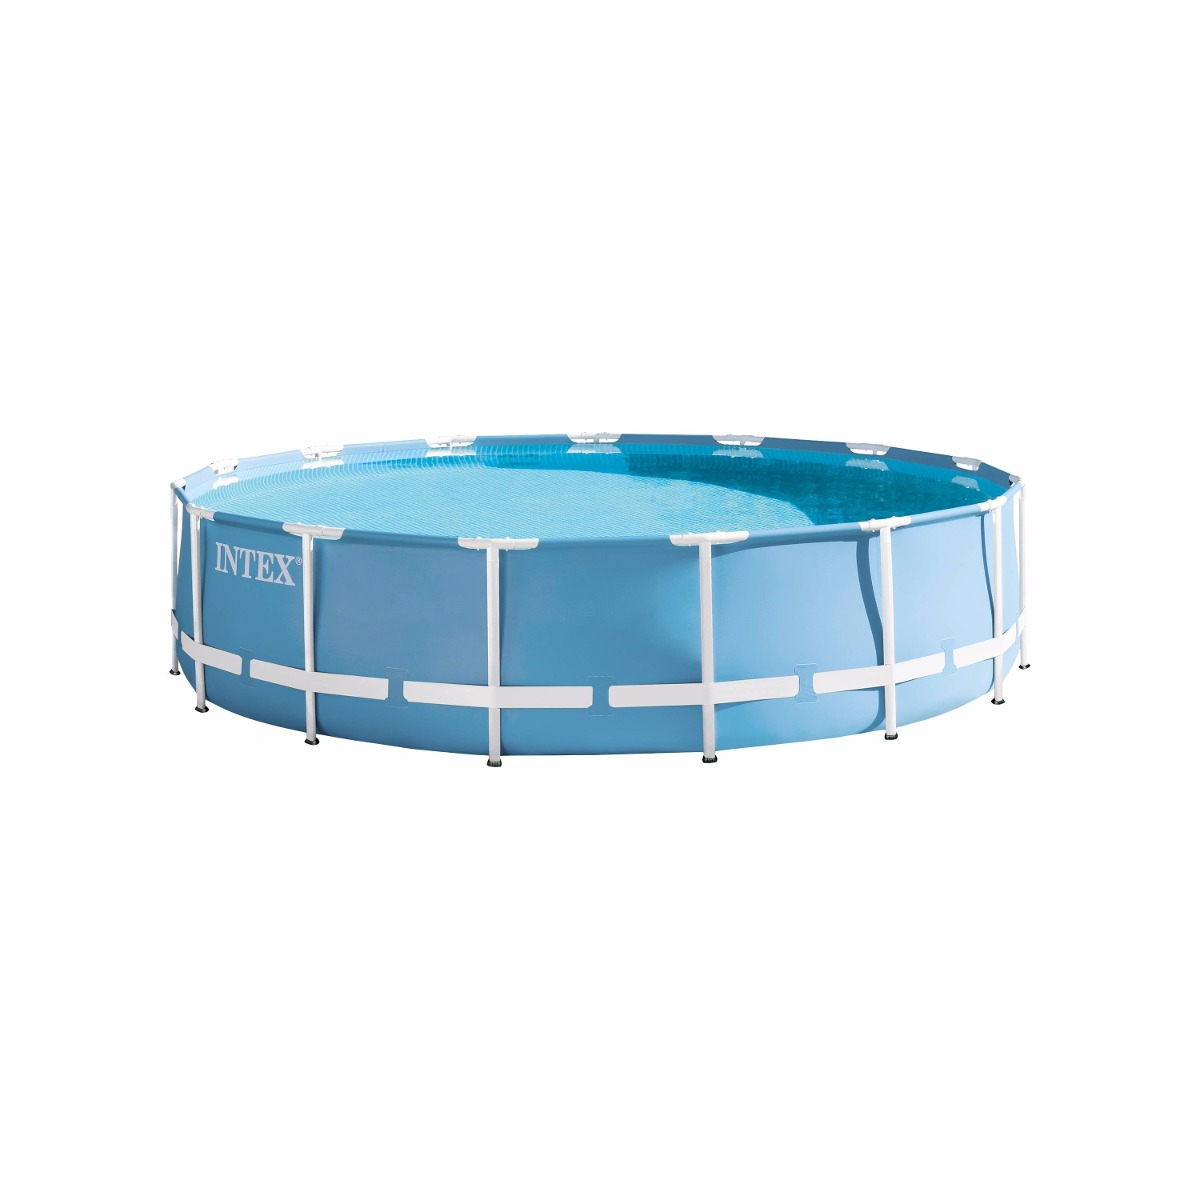 Alberca estructural tubular intex m x m for Piscina estructural intex